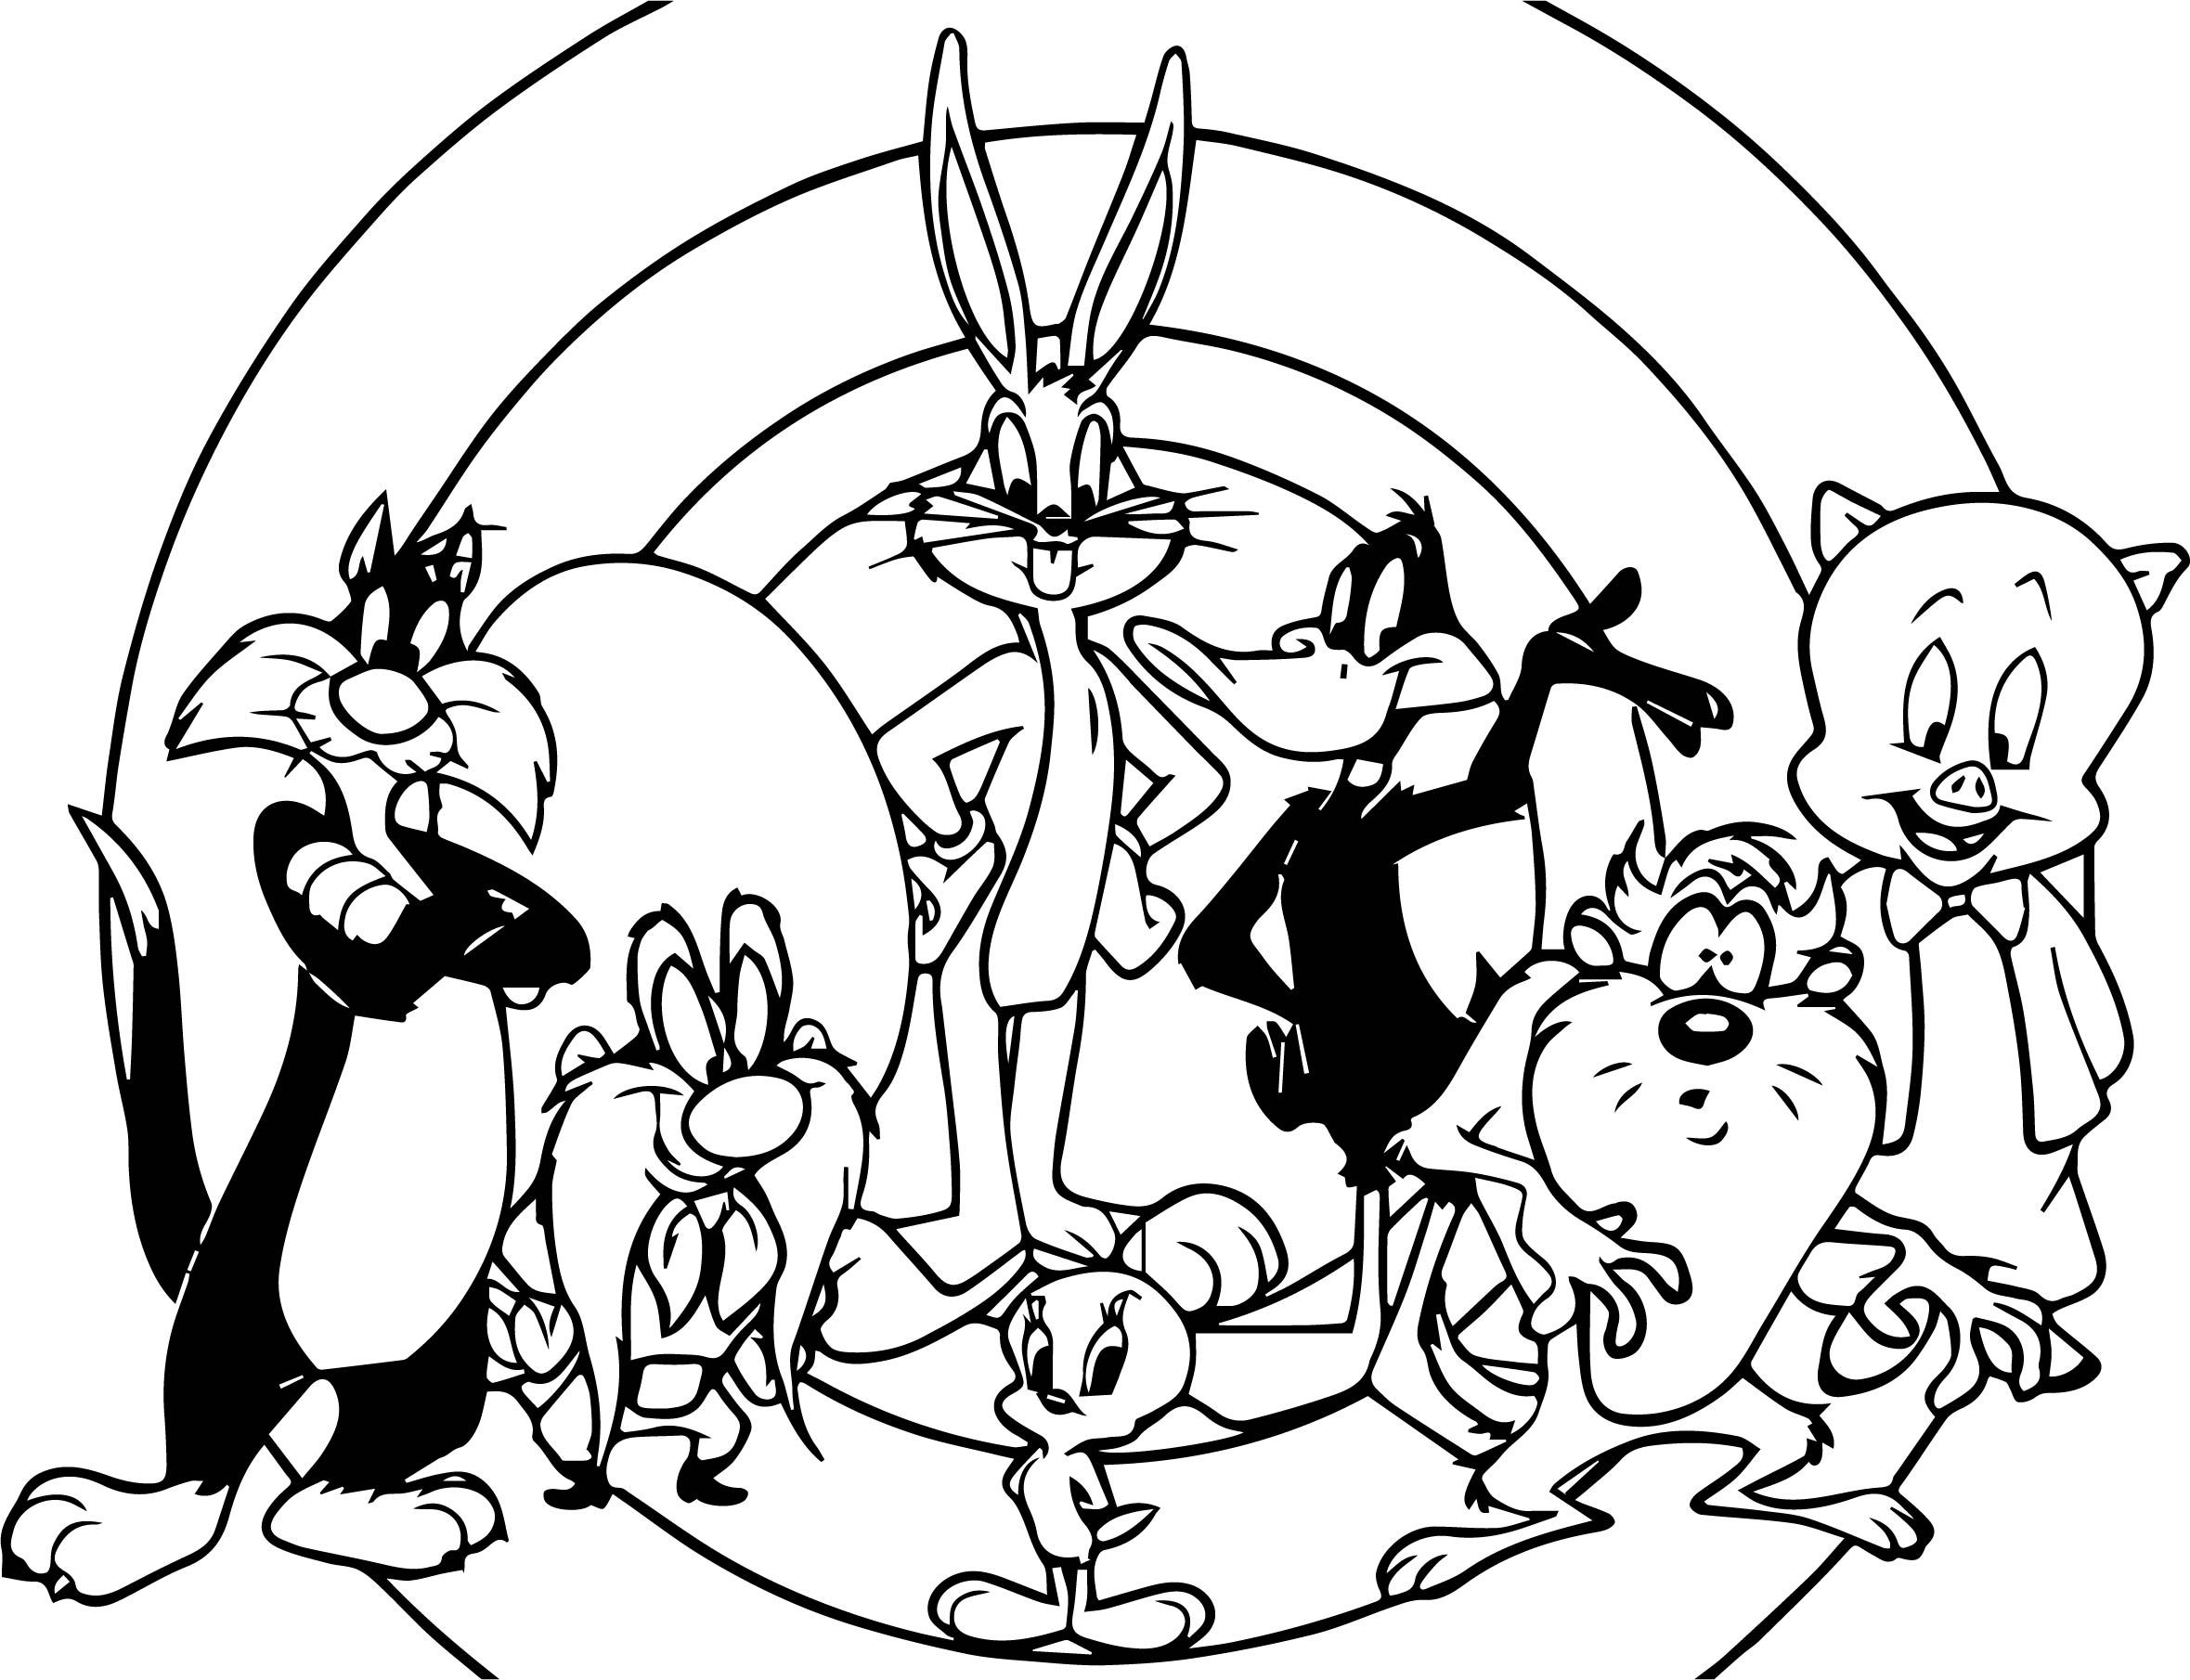 cartoon character coloring pages # 58